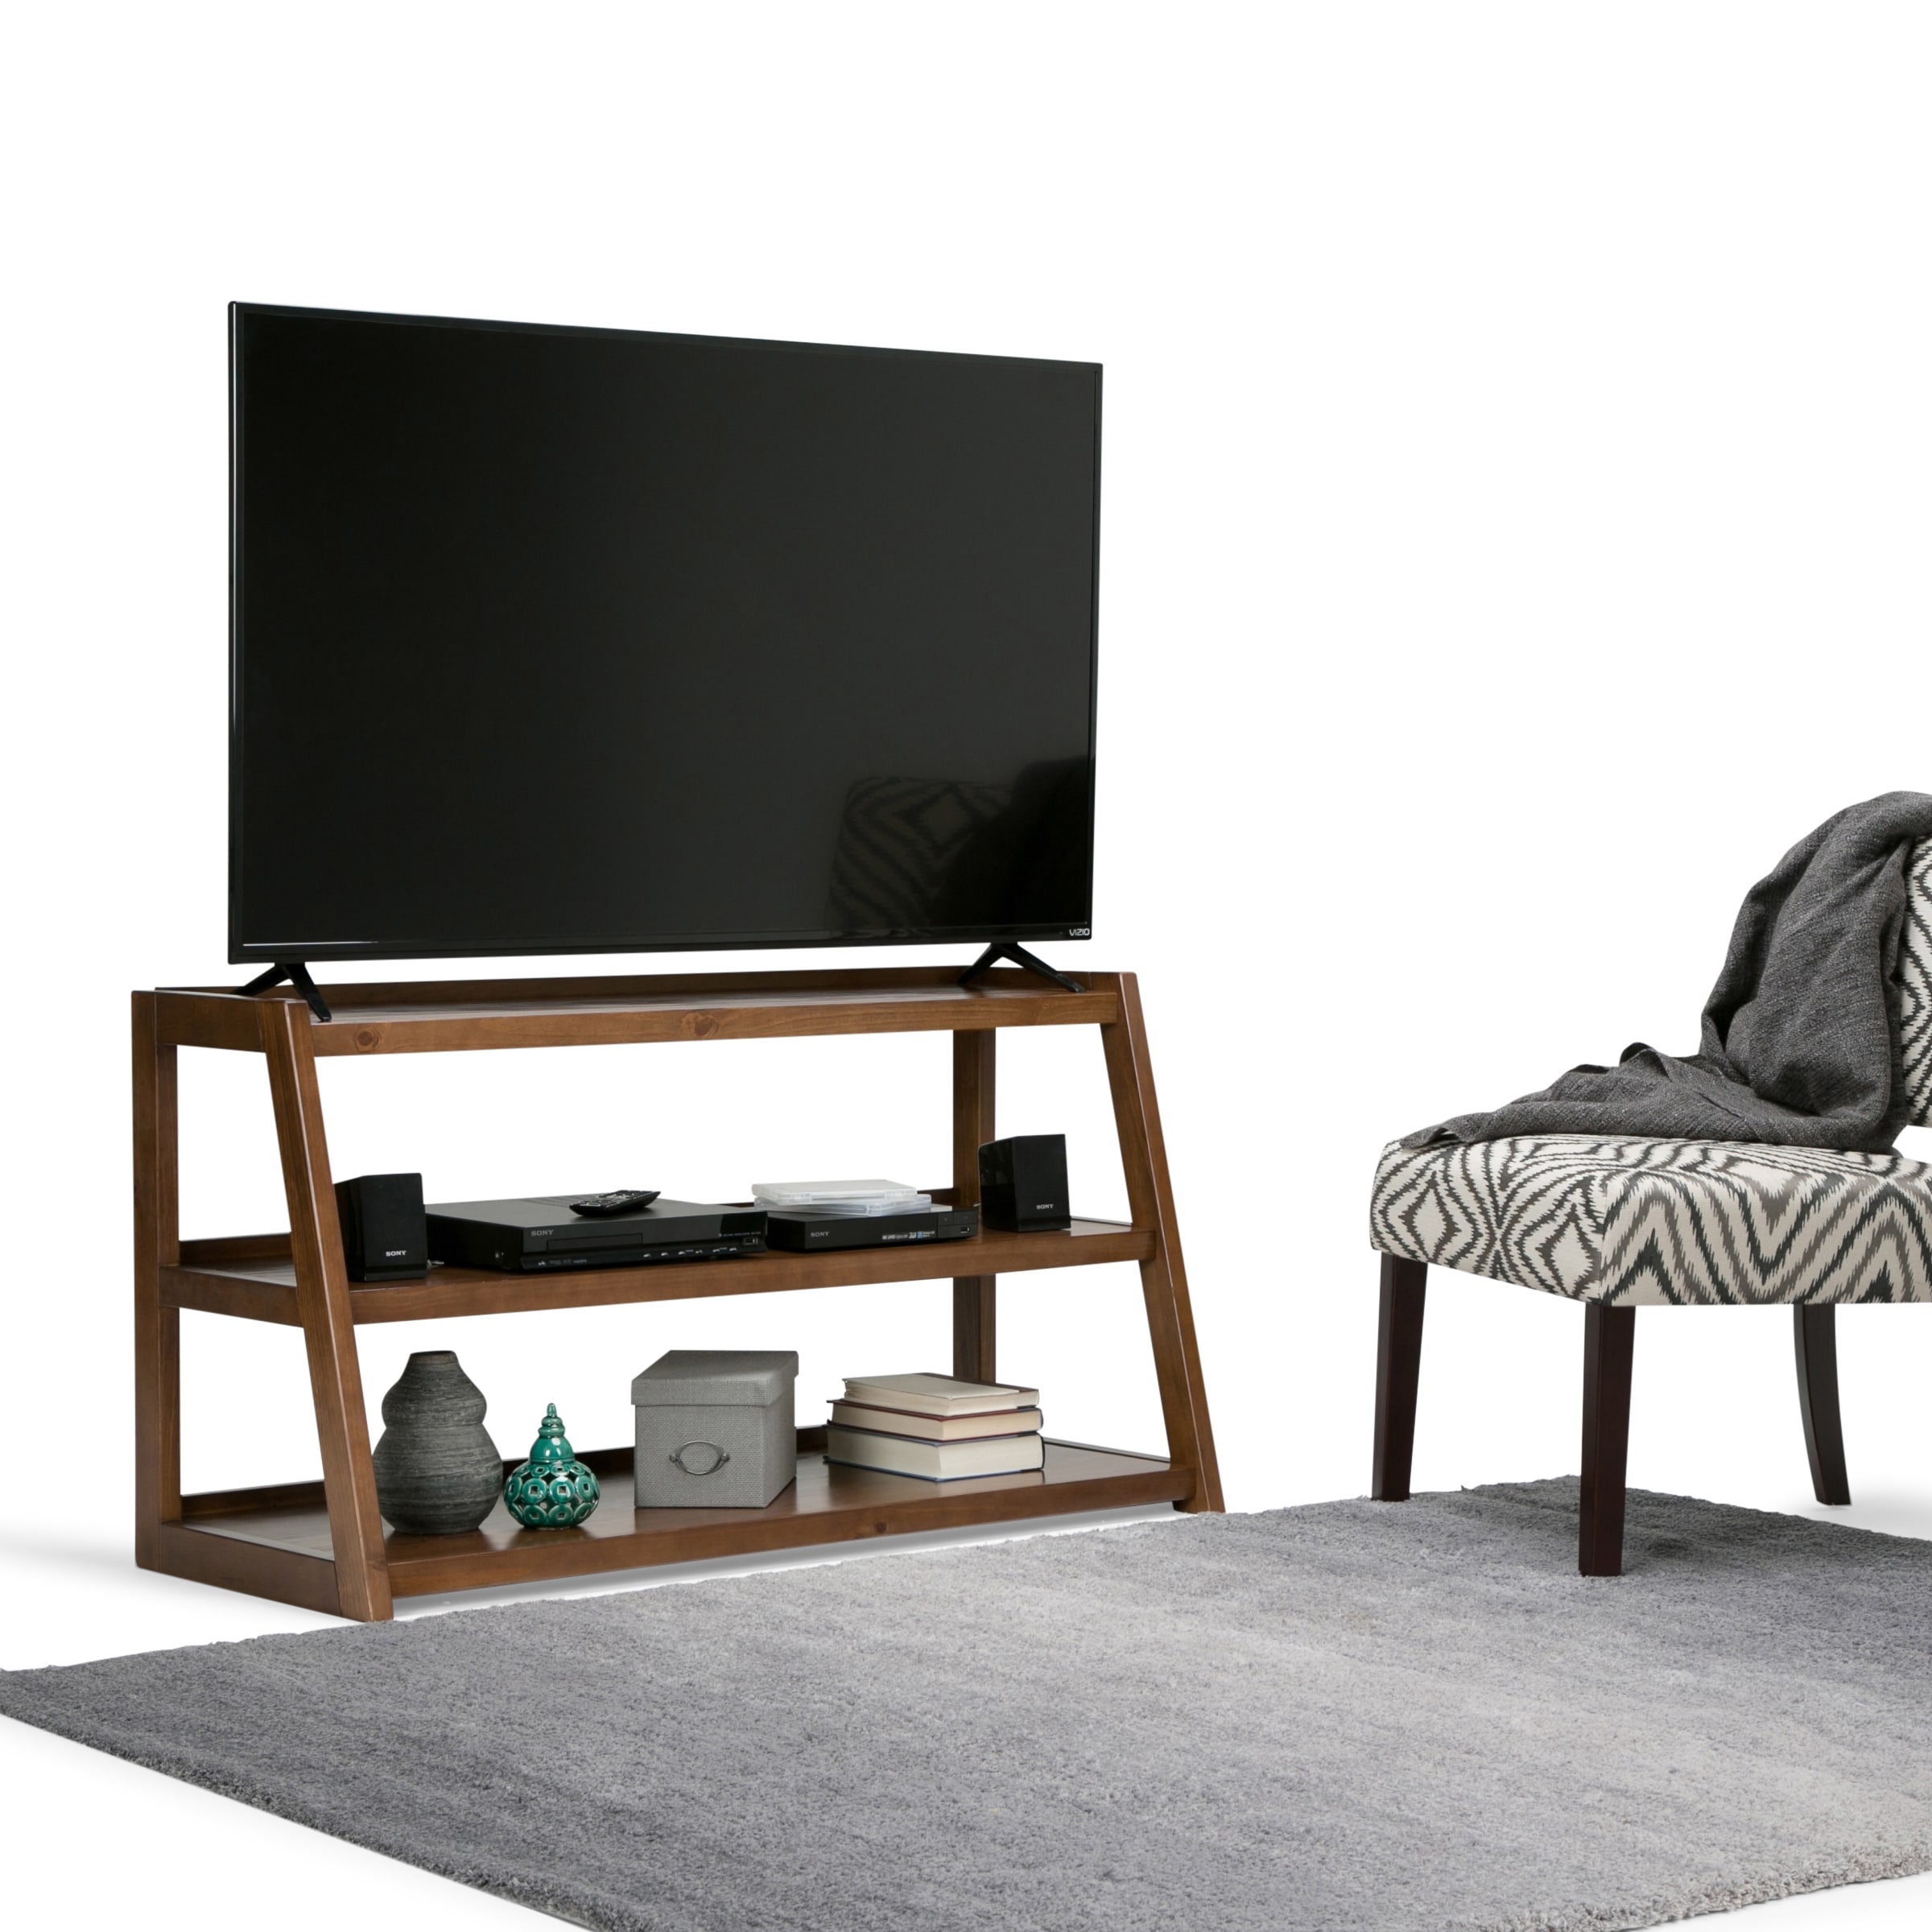 WyndenHall  Hawkins 48-inch TV Media Stand for up to 52-inch TV's